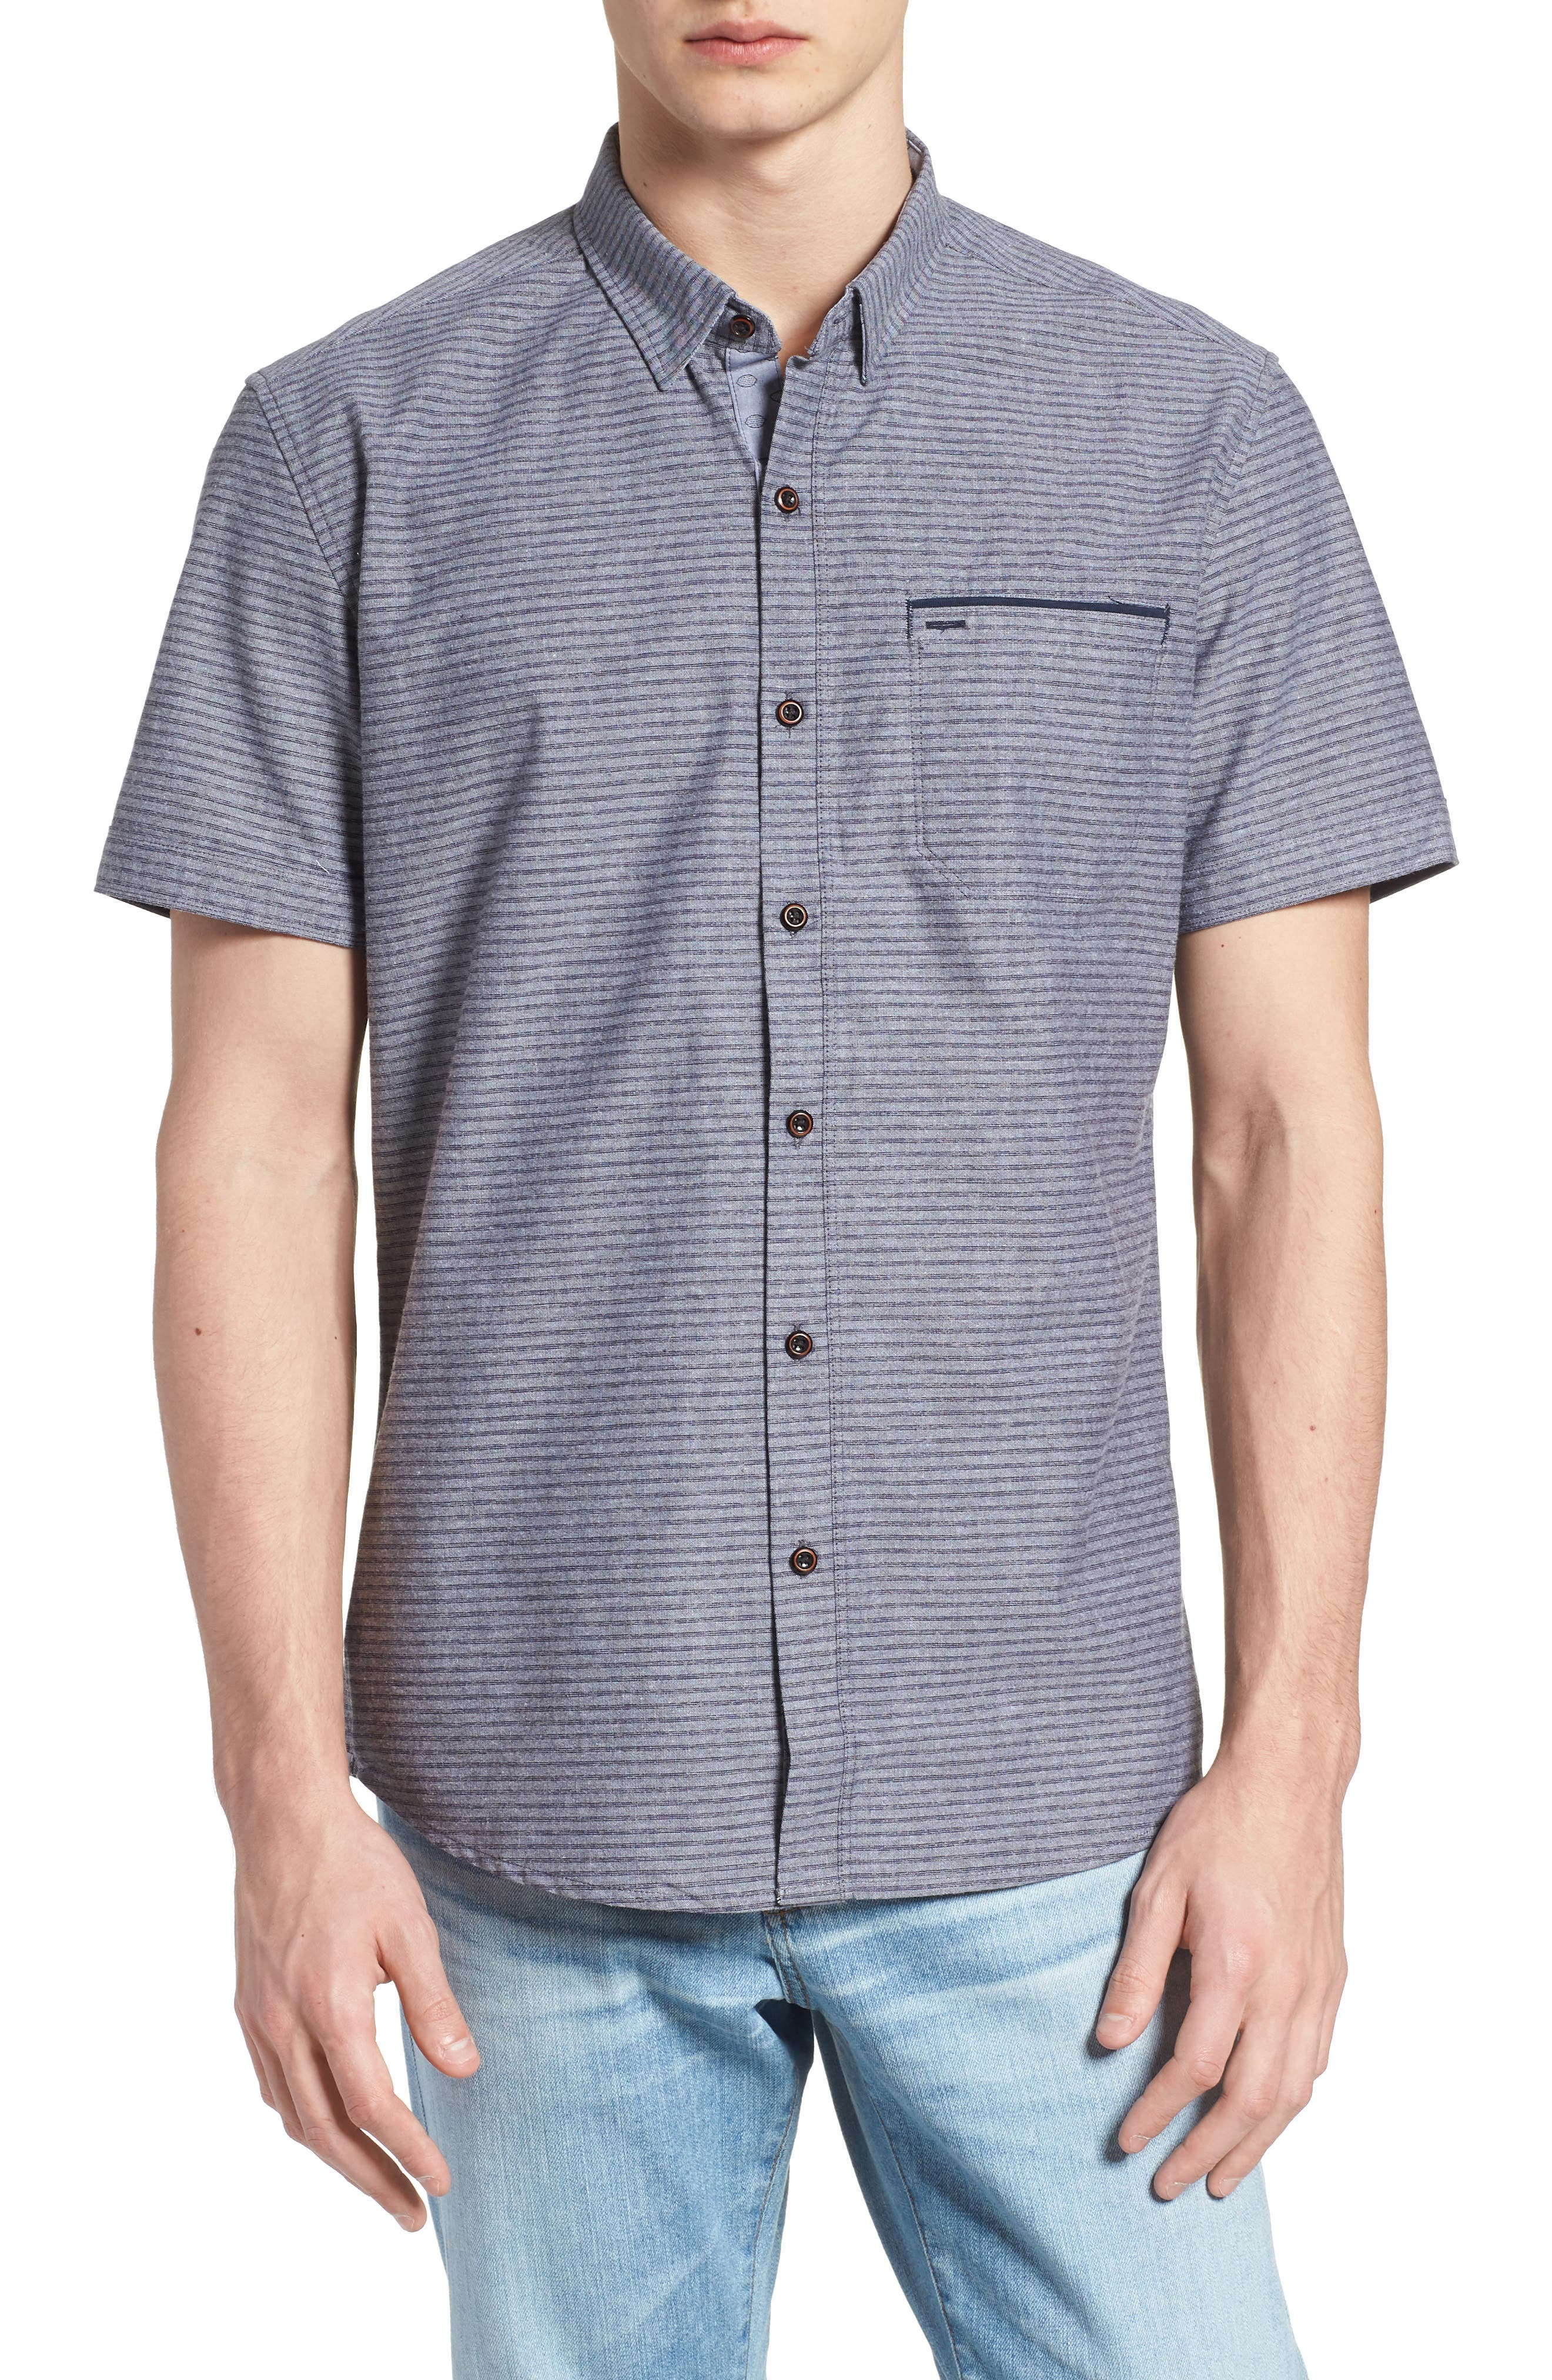 The Crunch Slim Fit Short Sleeve Sport Shirt,                             Main thumbnail 1, color,                             060